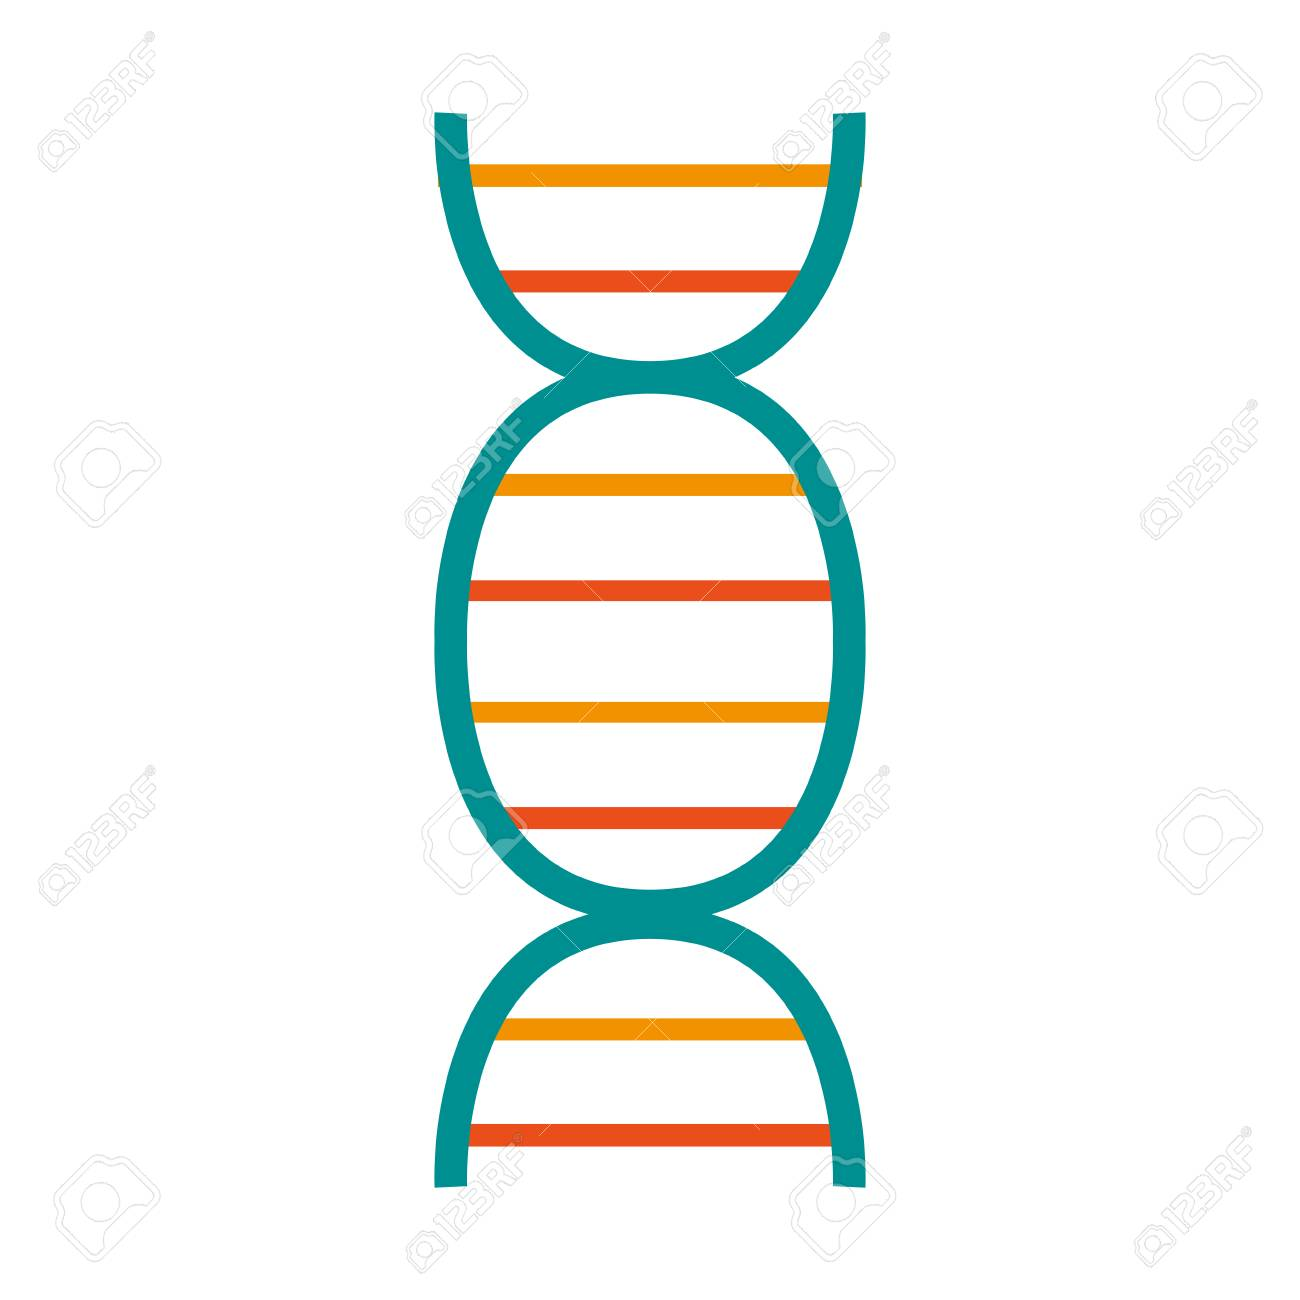 dna strand icon image vector illustration design.